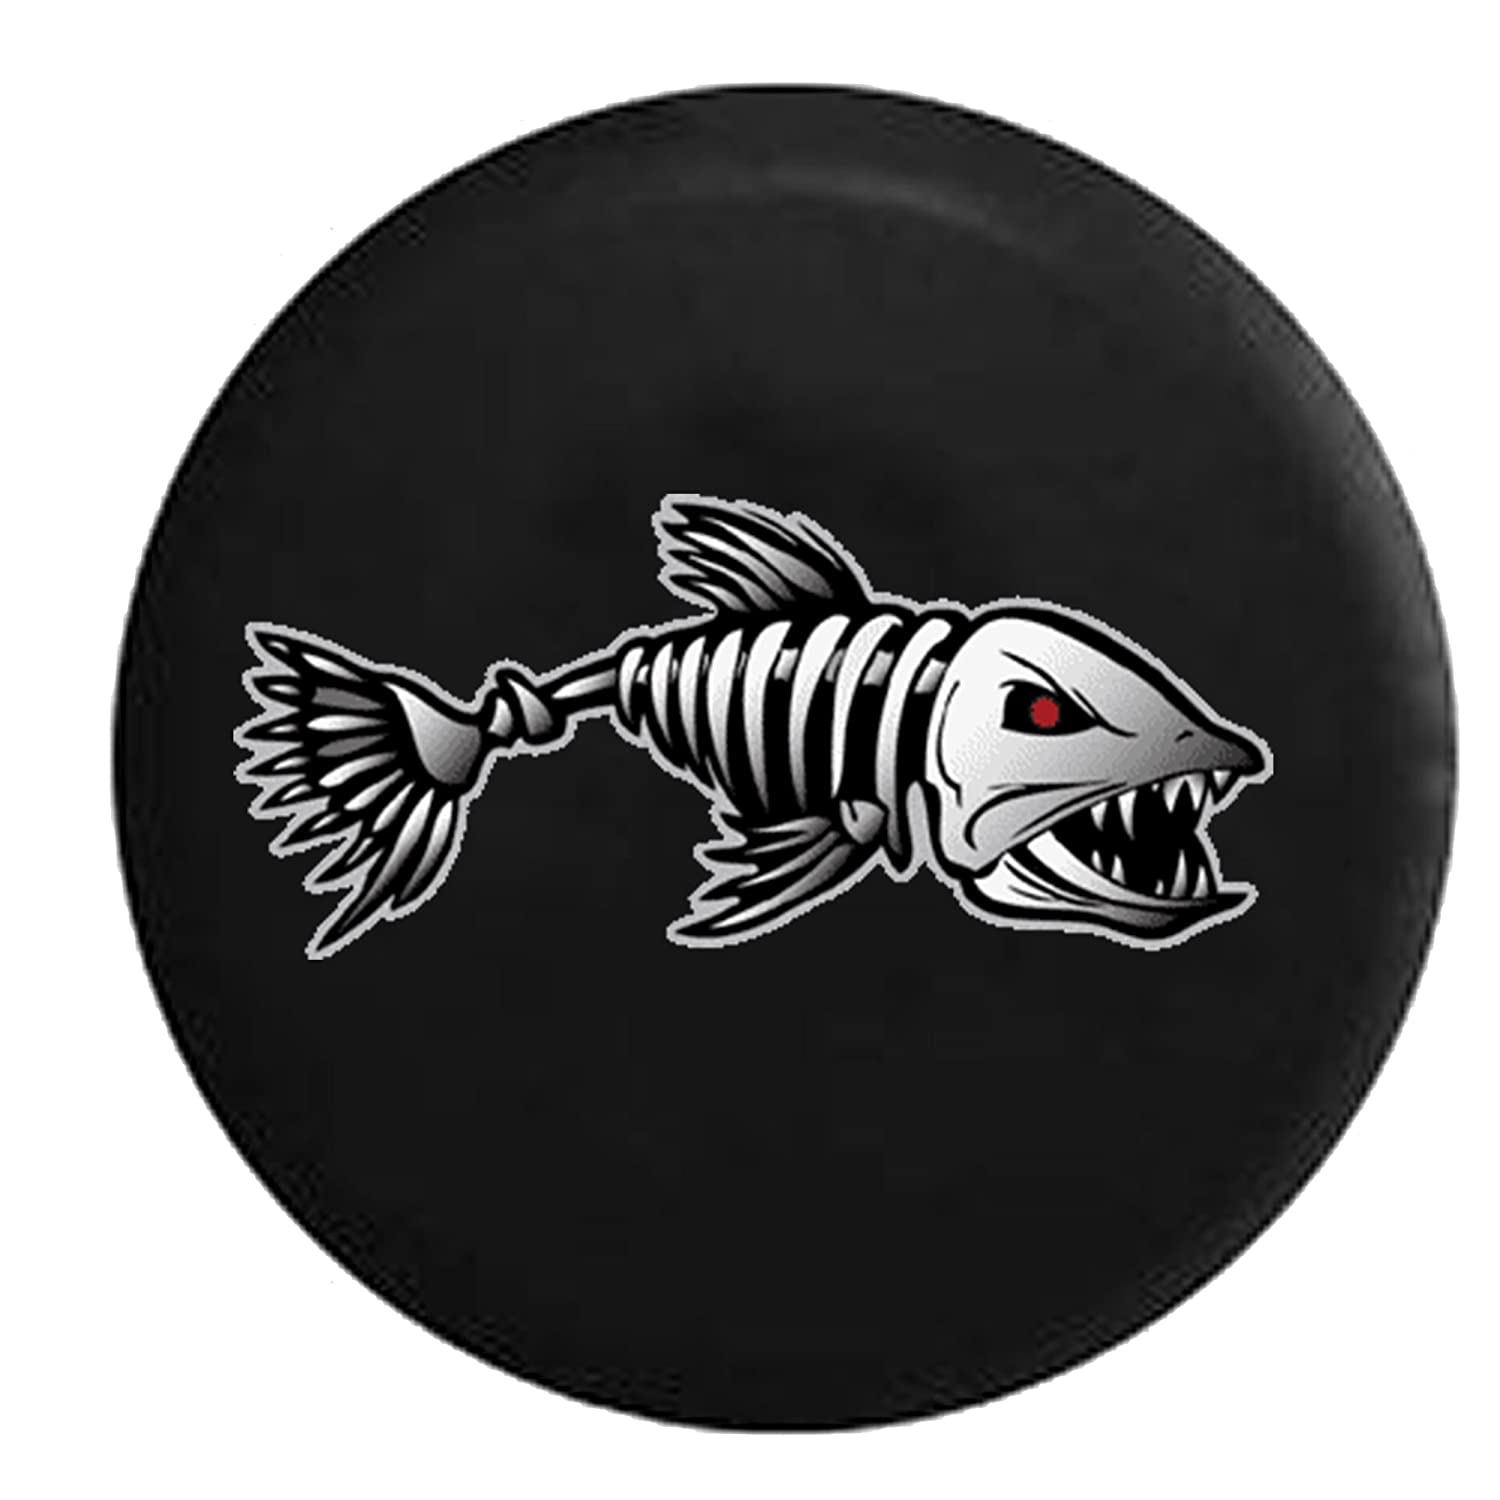 Bone Fish Red Eyes Fishing Jeep RV Spare Tire Cover Black 35 in 556 Gear